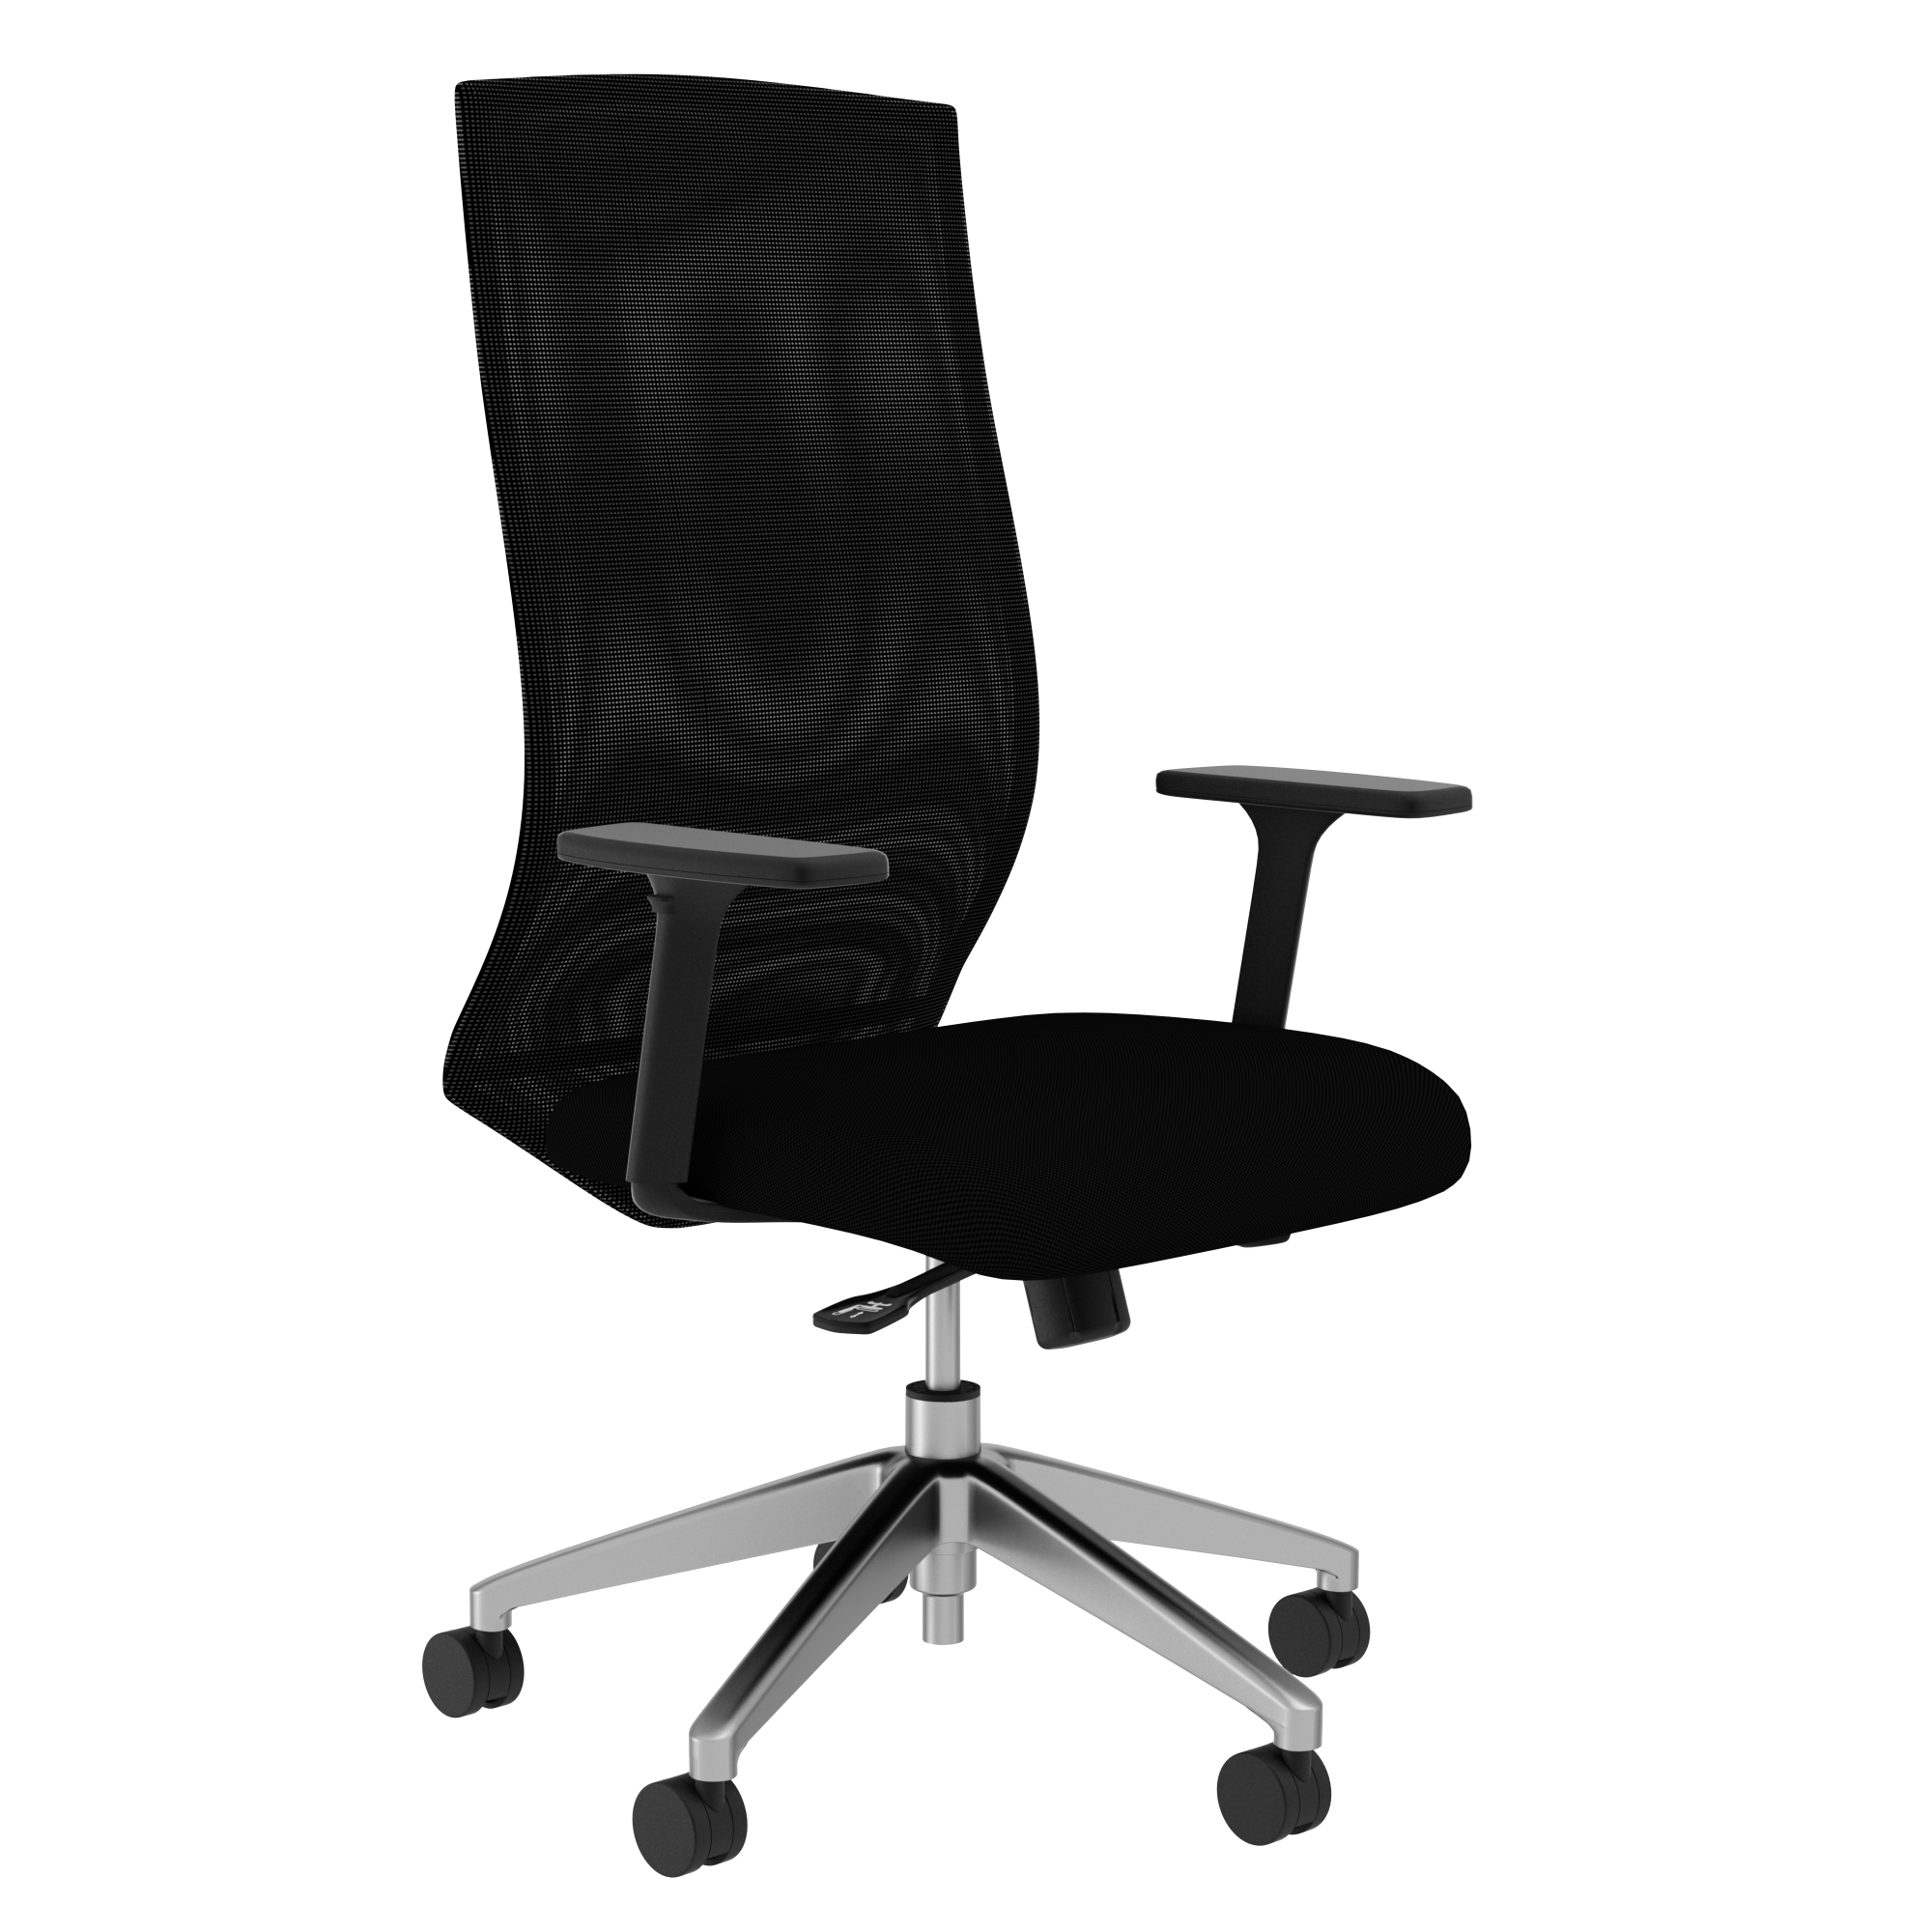 Cubicle Furniture from Compel - Maxim task chair